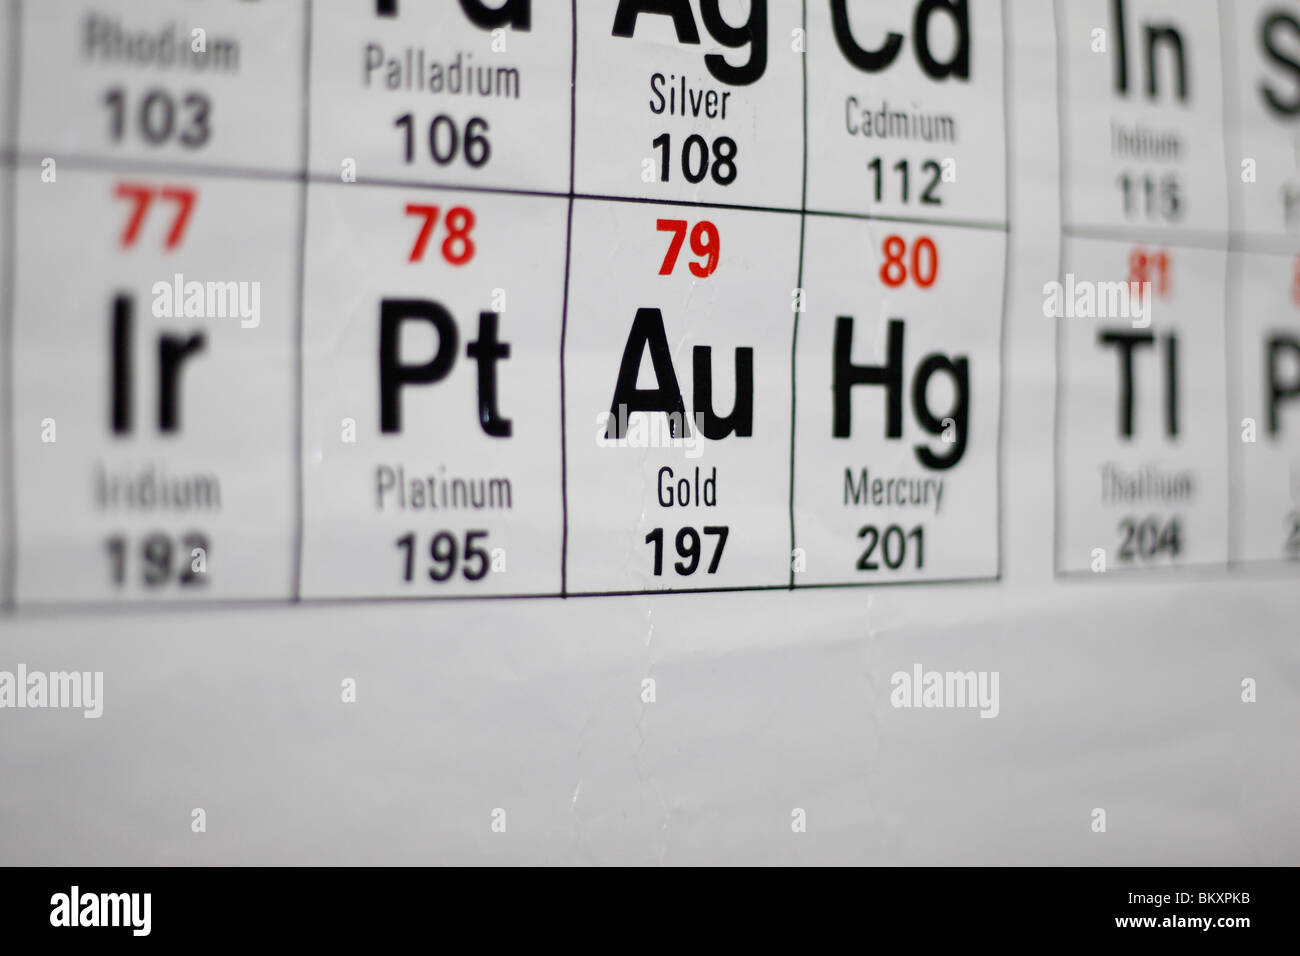 Close up angled view of a uk high school periodic table focusing close up angled view of a uk high school periodic table focusing on the element goldau with other elements out of focus urtaz Image collections